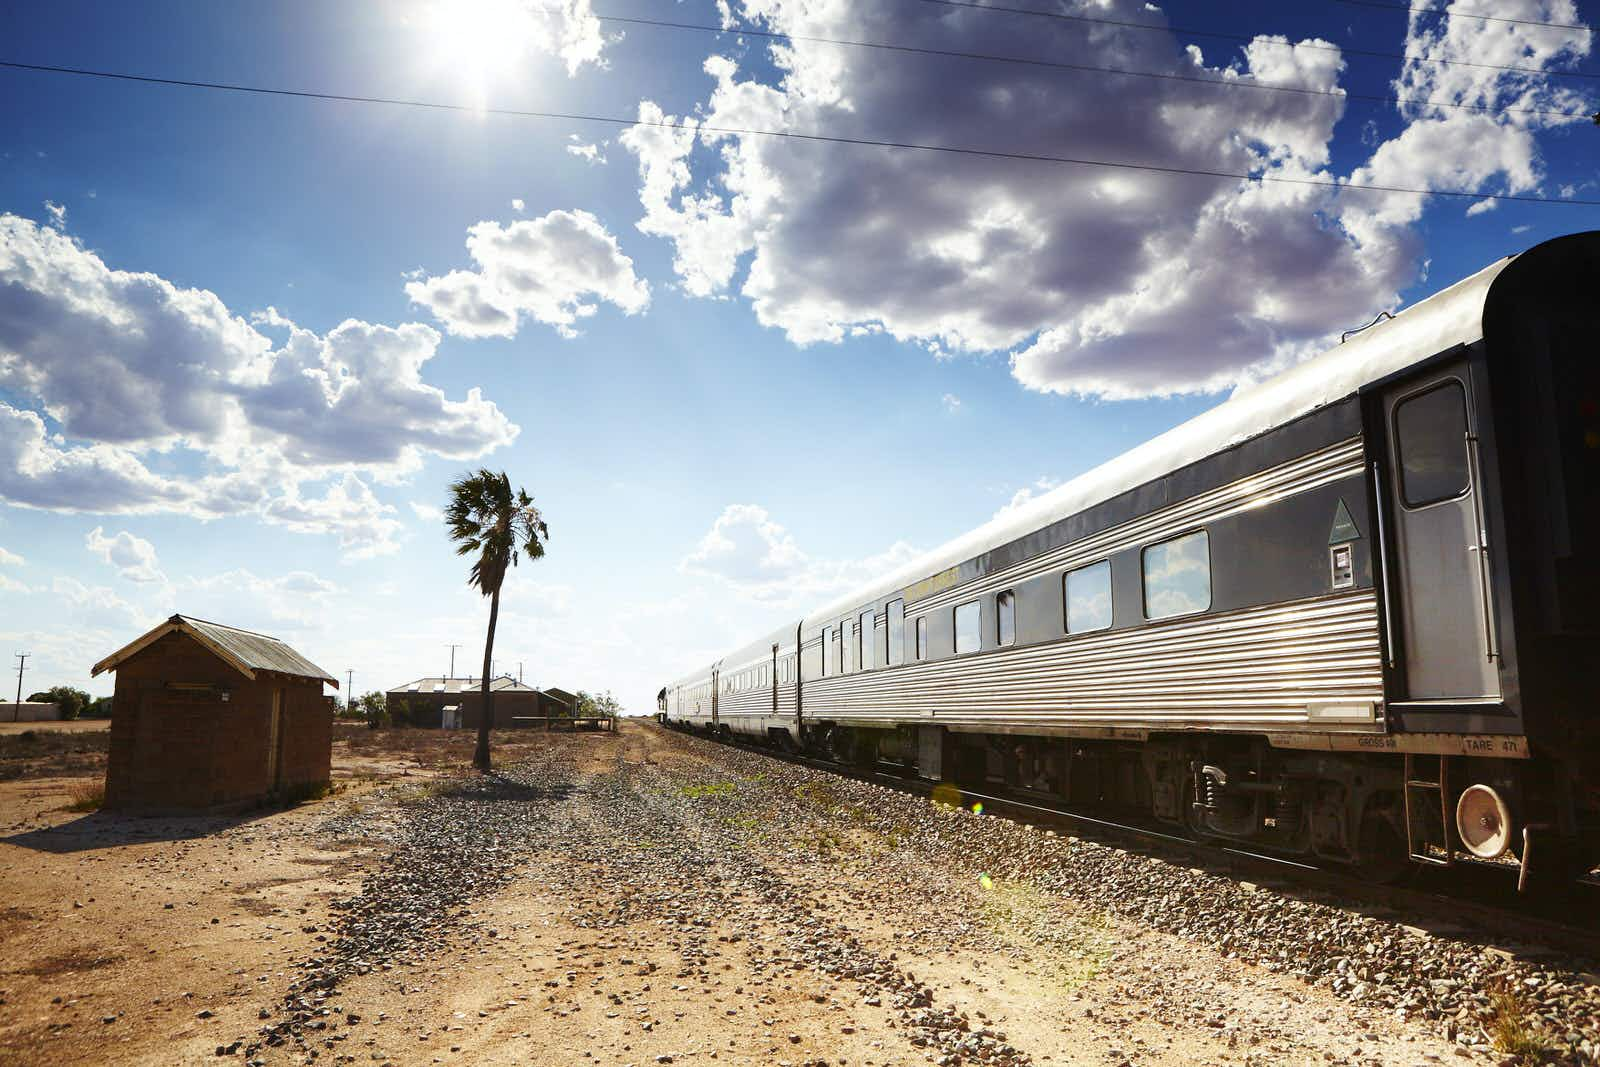 The Indian Pacific train stops in a small town on the Nullarbor Plain.